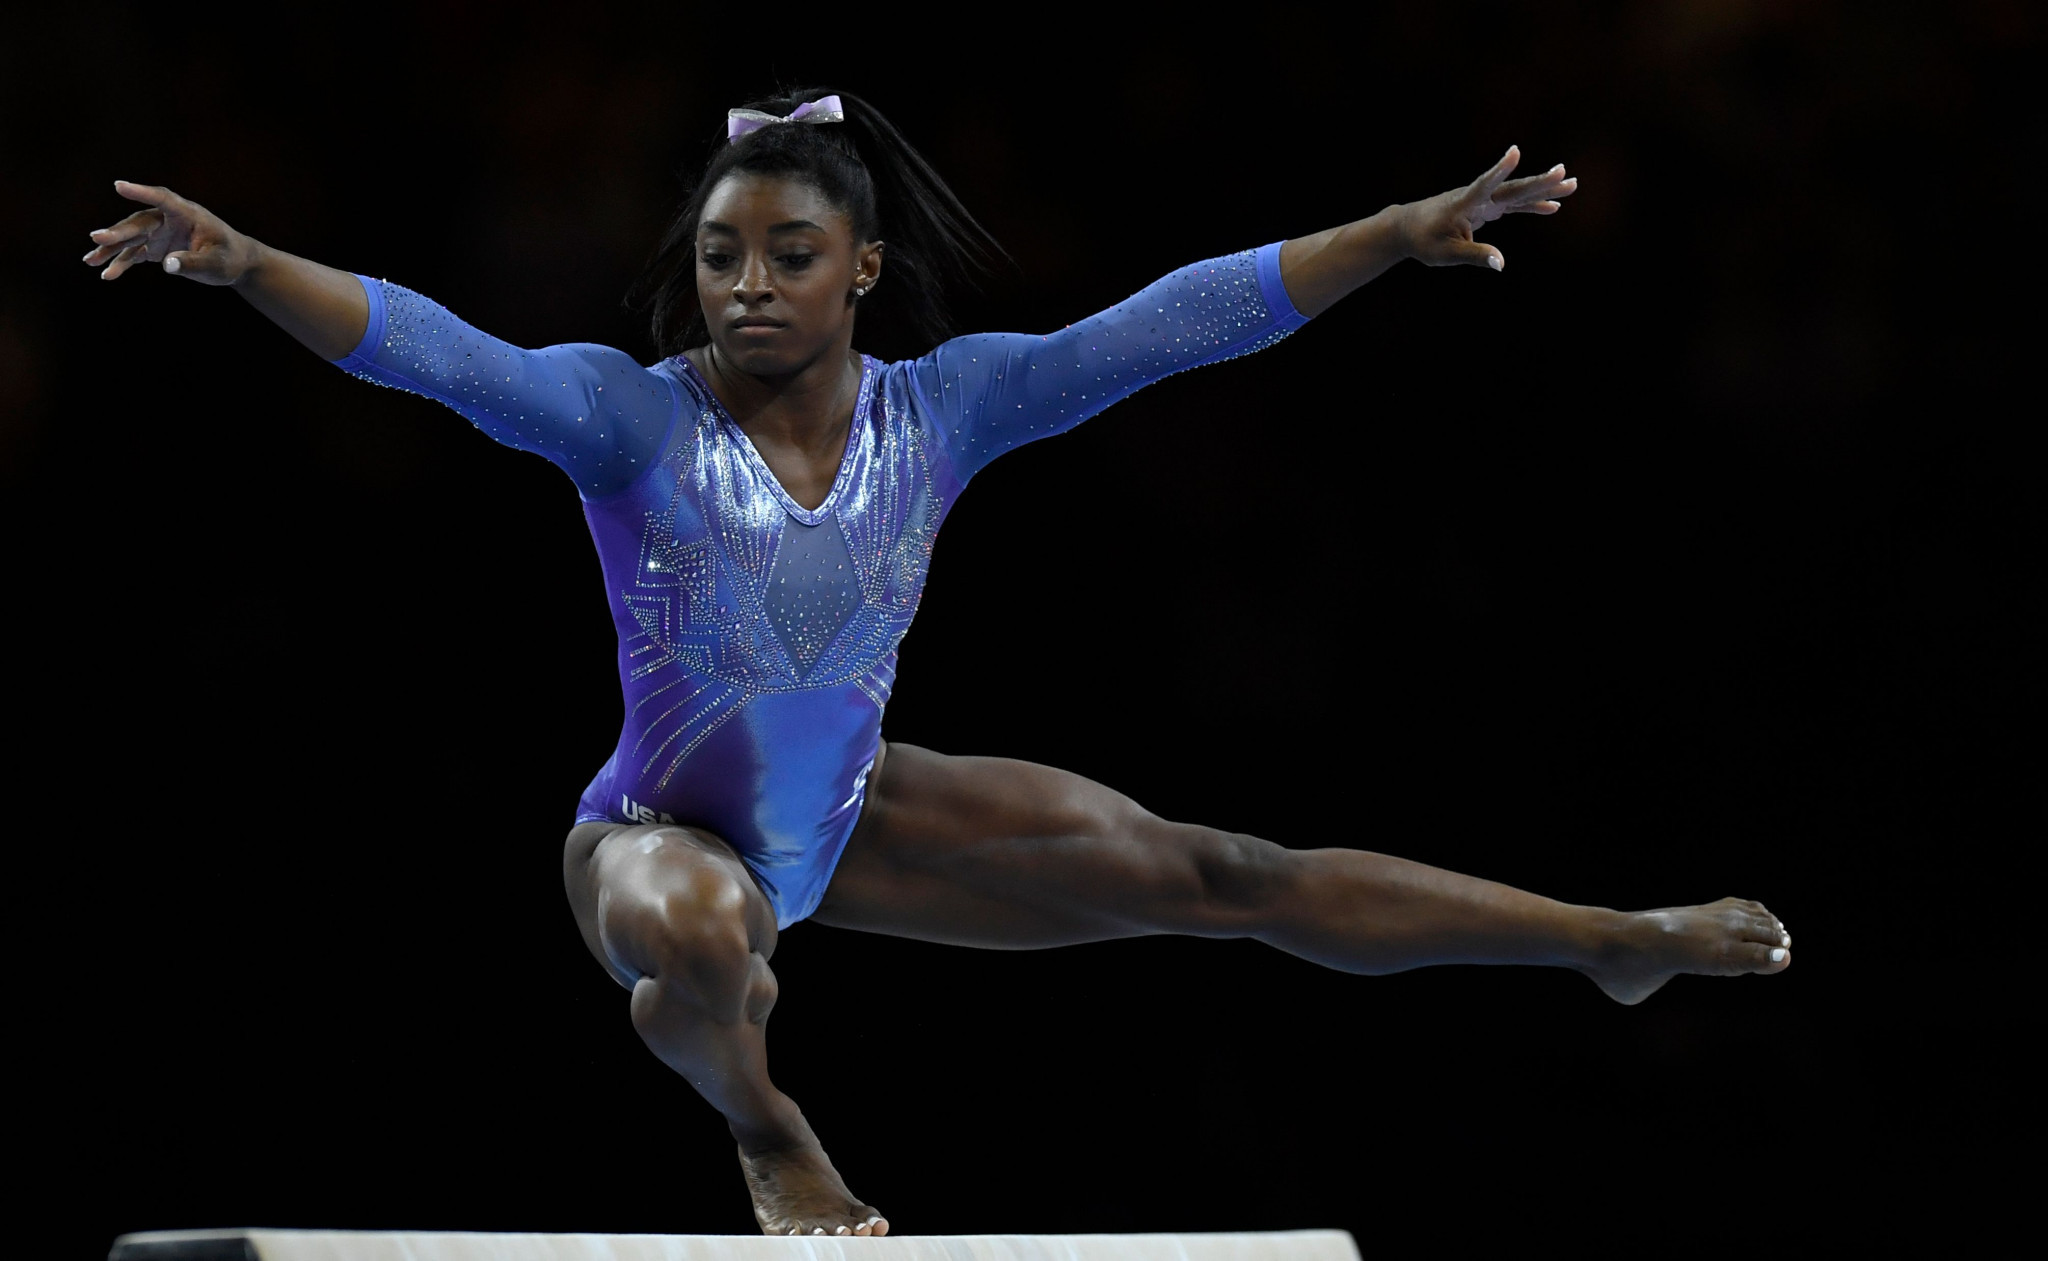 Four-time Olympic champion Simone Biles discussed her experience of abuse at the hands of disgraced doctor Larry Nassar in an interview with Vogue ©Getty Images